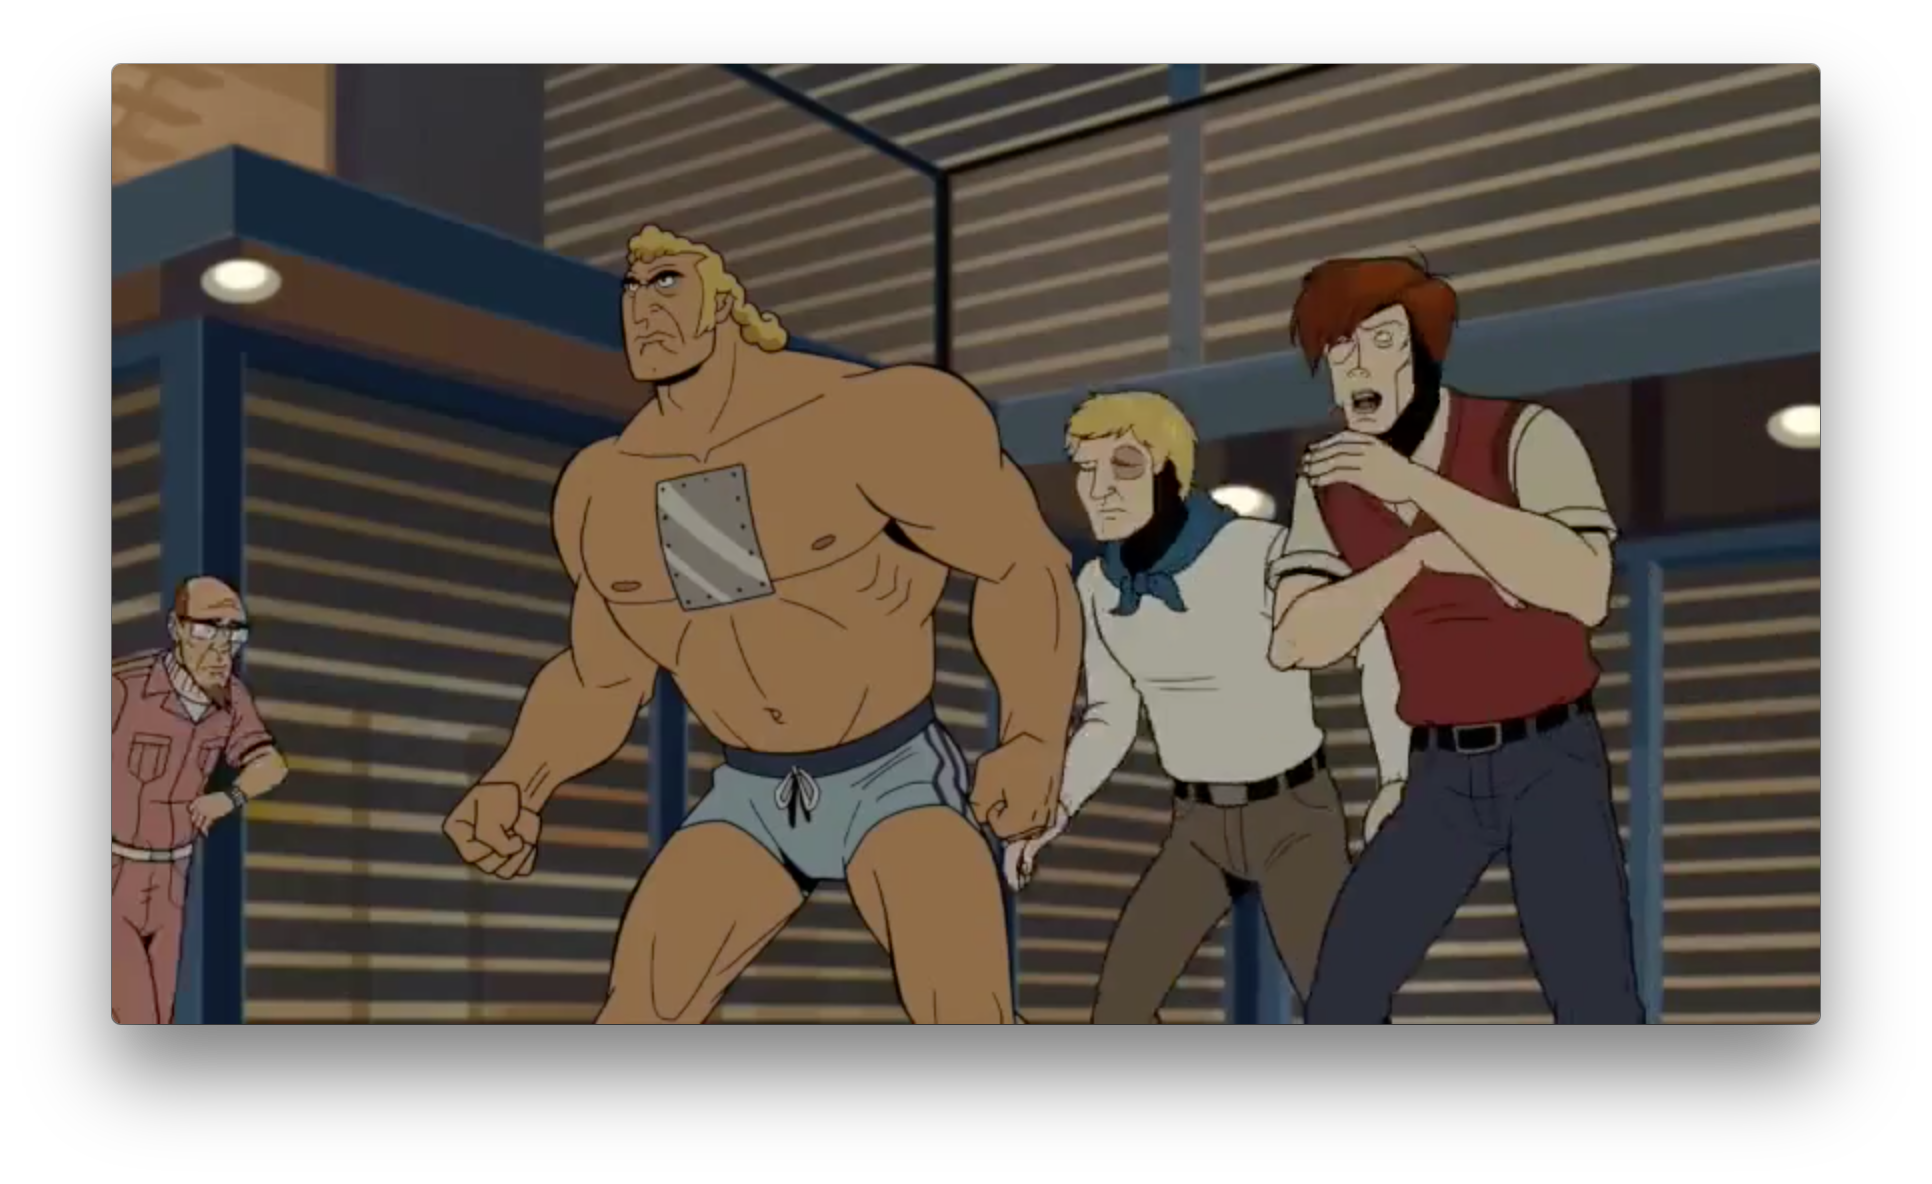 And finally another view on the house. This is one of the most interesting shots in the trailer for me. Brock is alongside what looks like Ward, Watch, and Gen. Gathers(?) dressed up as old school Dean, Hank, and Doc. It hints to me that there are some sort of joint training exercises or simulations run with the cooperation of OSI and the Guild, teasing the more conspiratorial ends of the Venture universe.